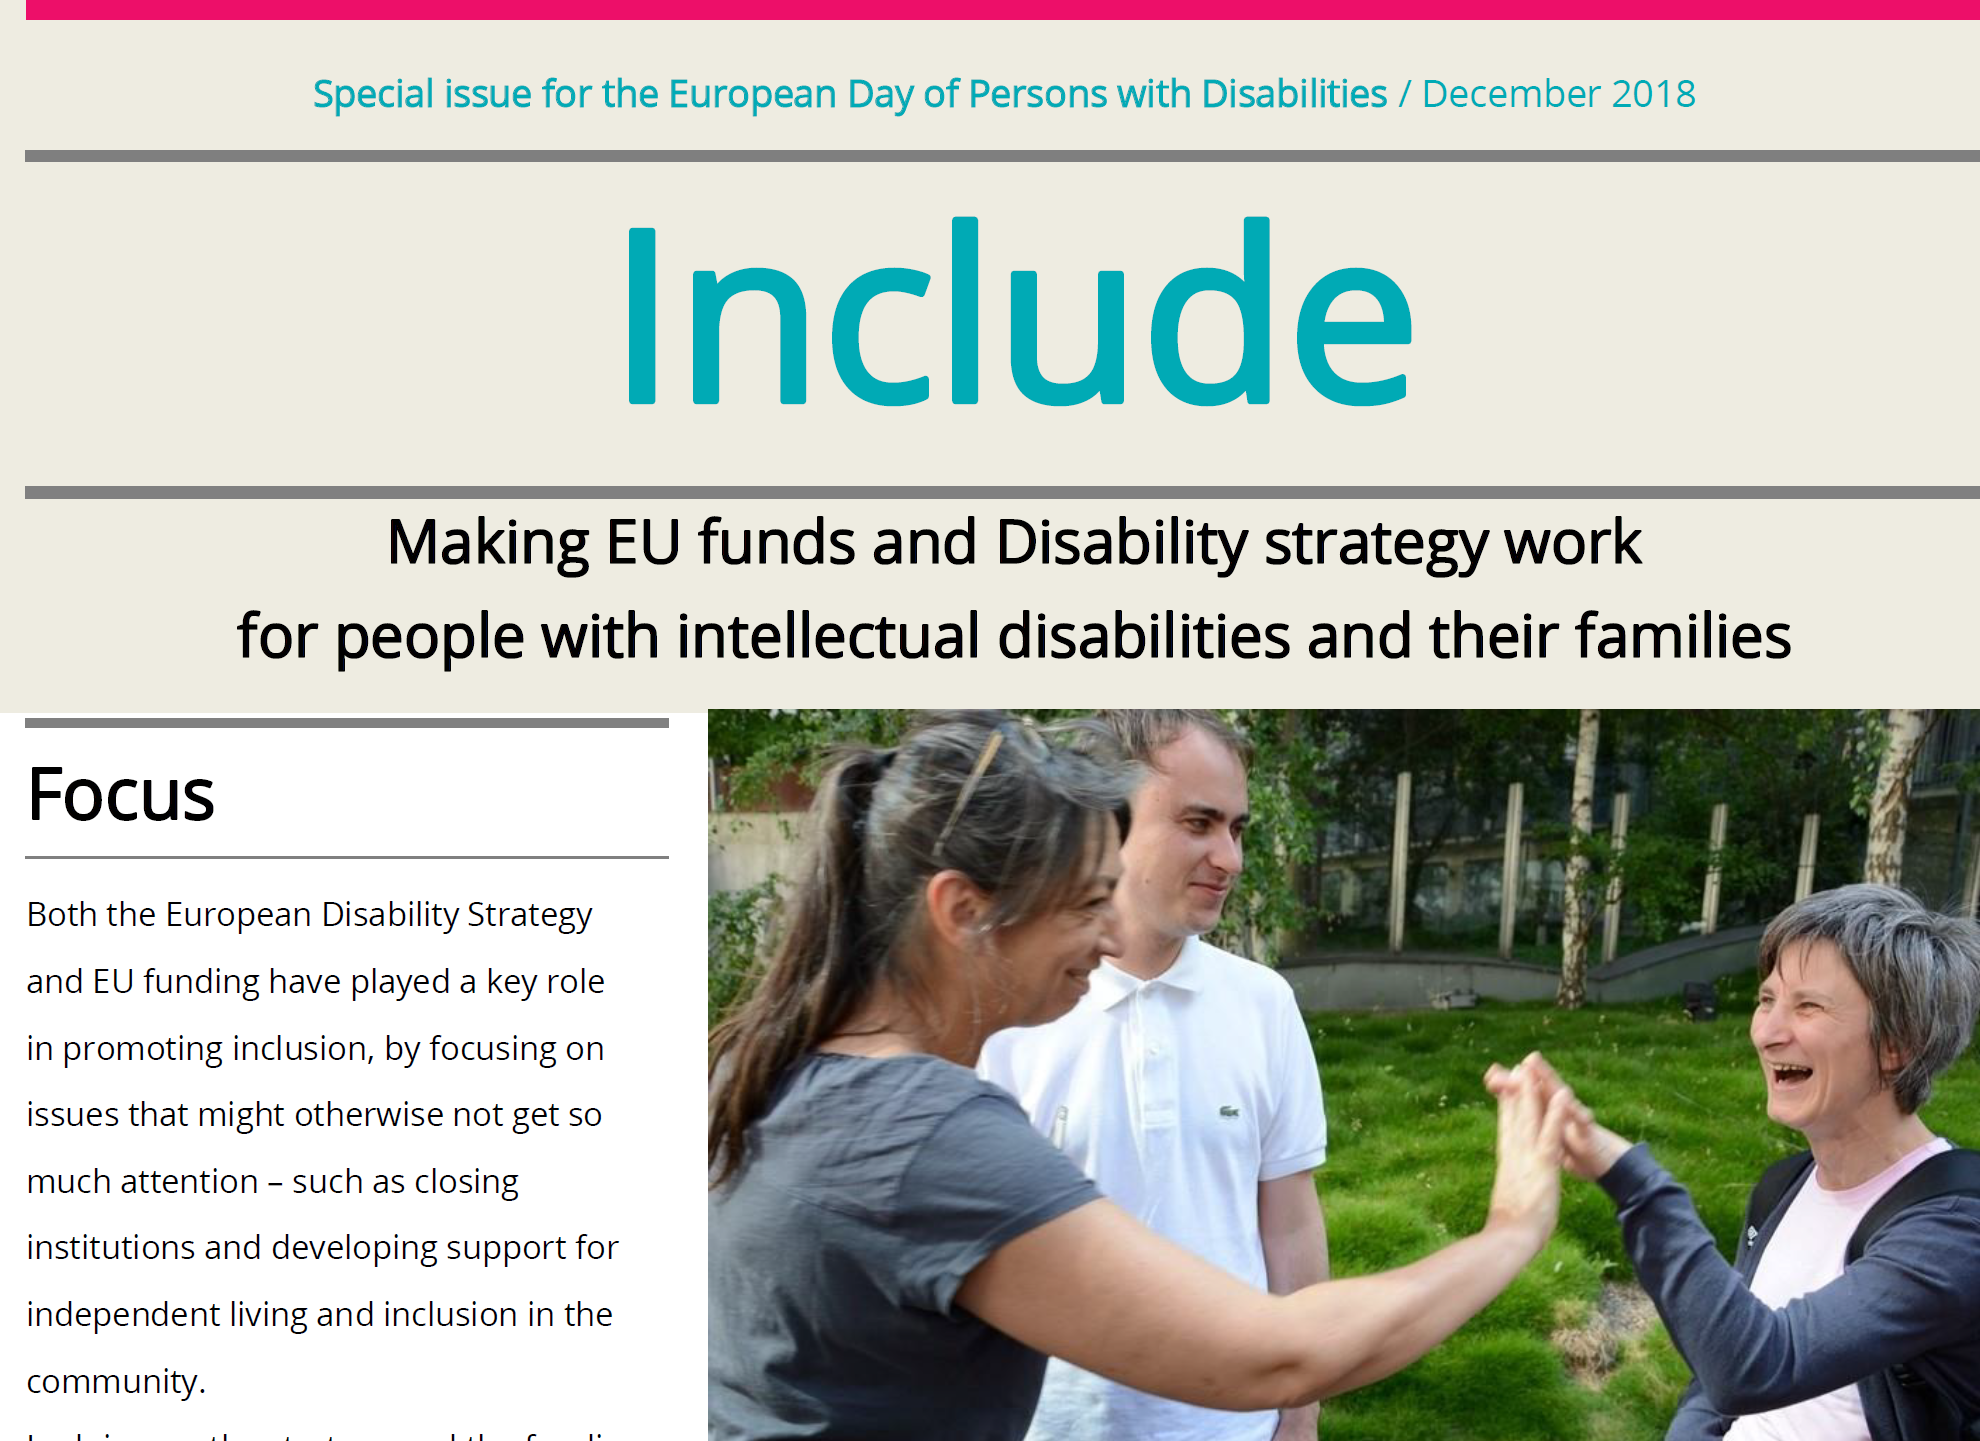 Include – special issue for the European Day of Persons with Disabilities 2018 conference